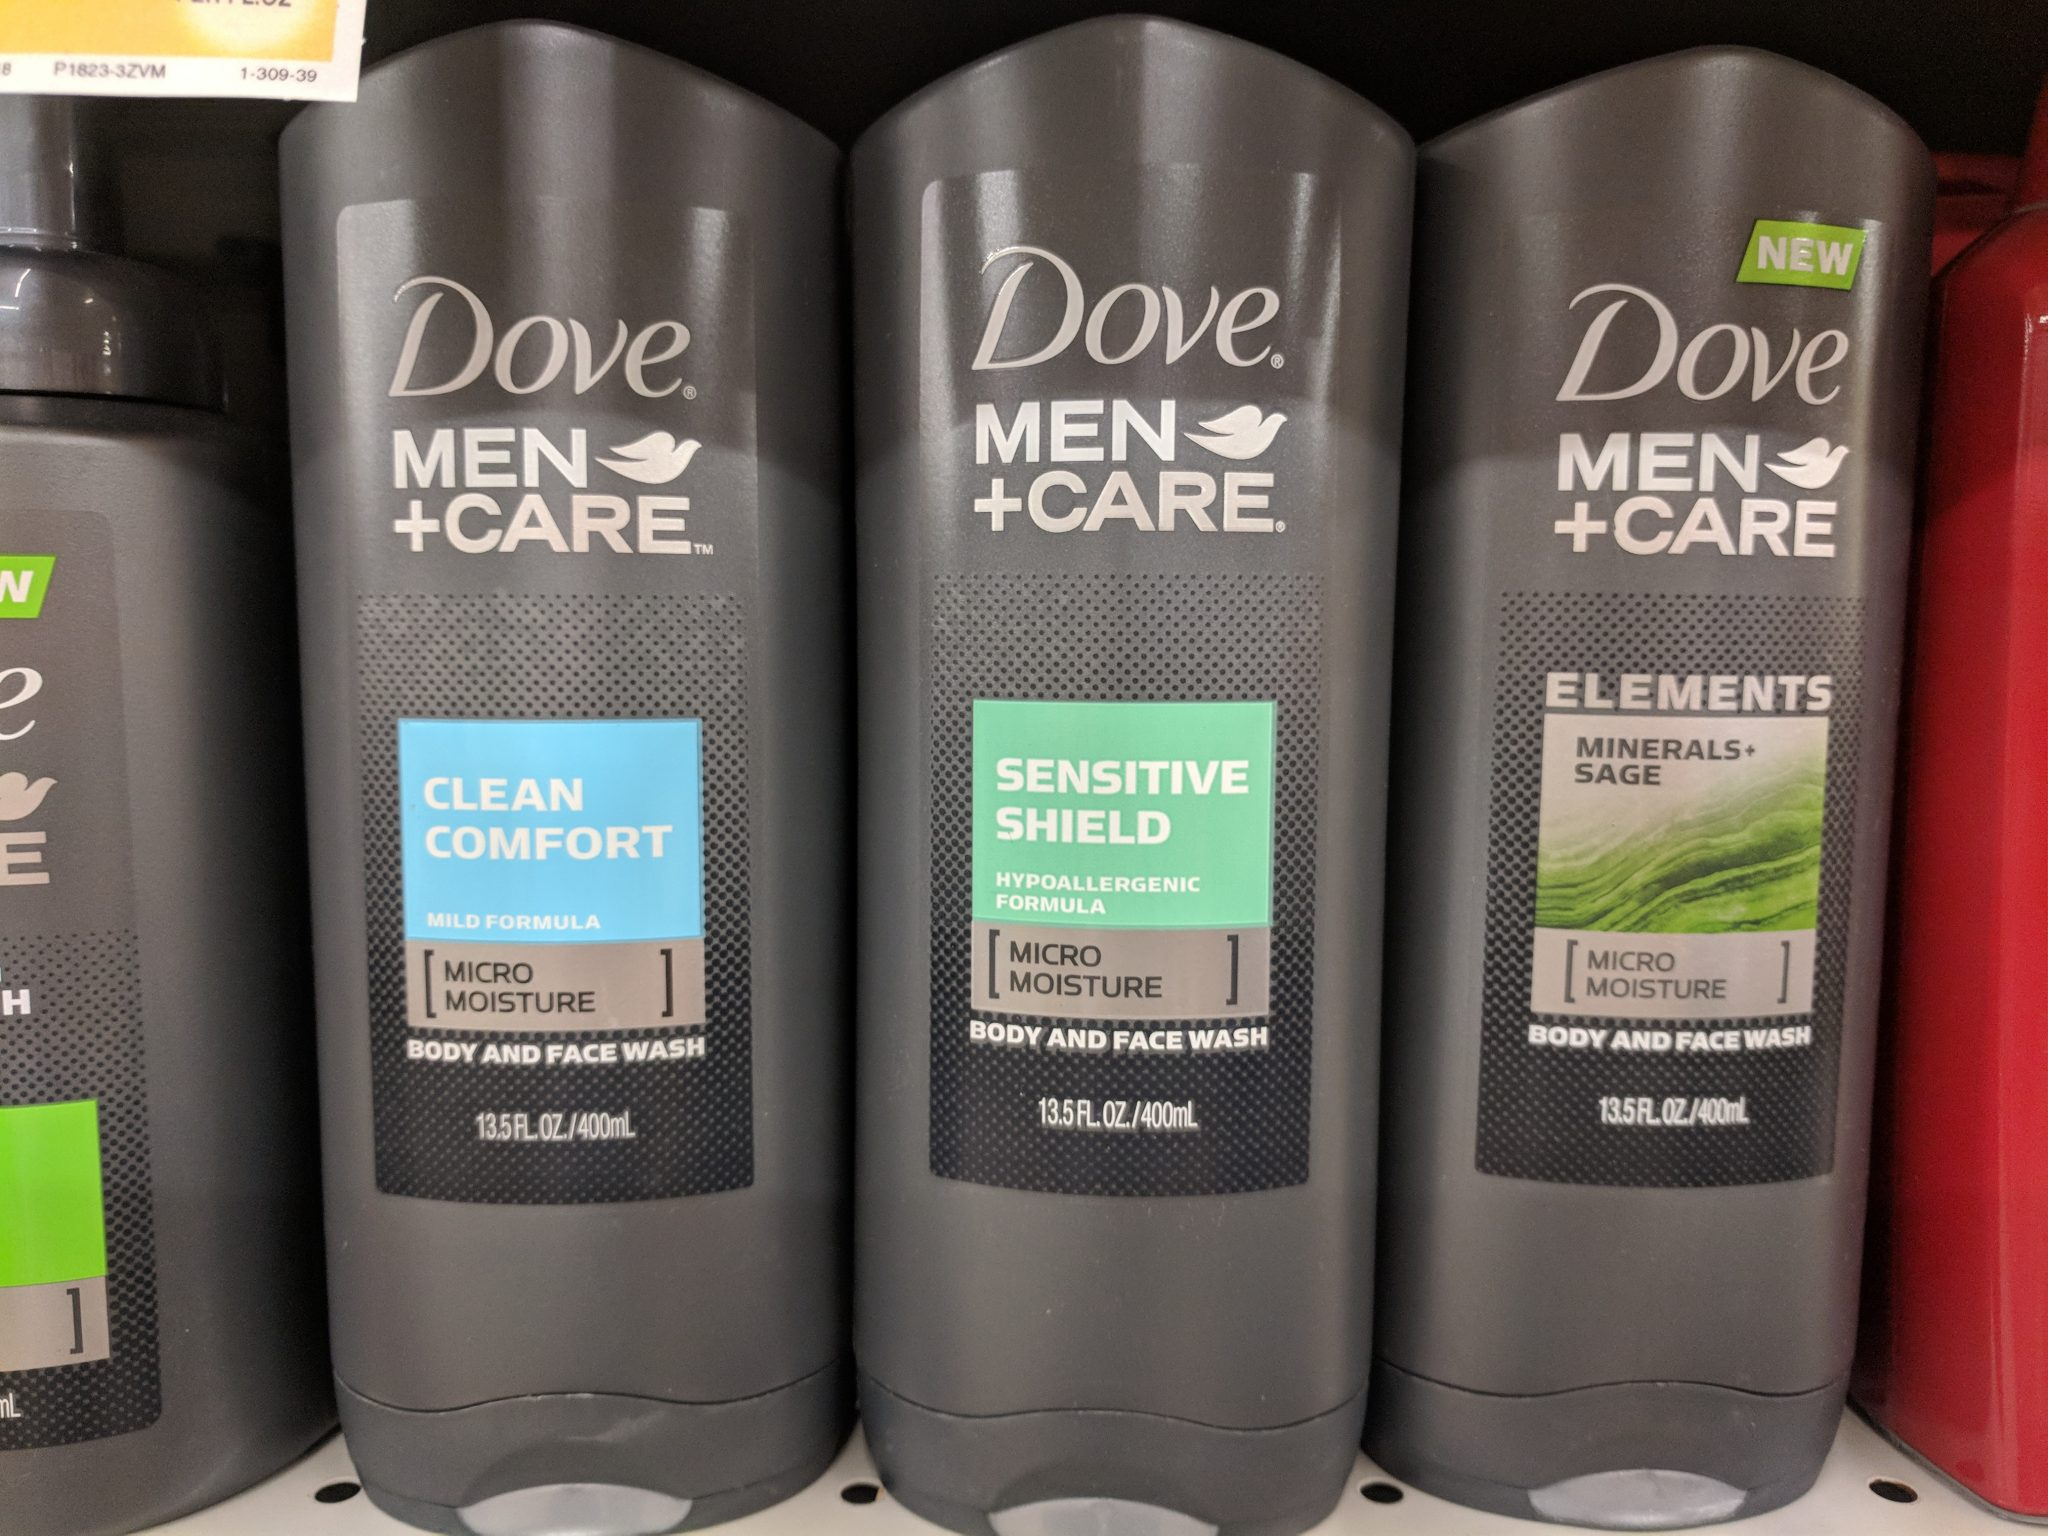 Dove Men+Care Shampoo & Conditioner for FREE at King Soopers!!